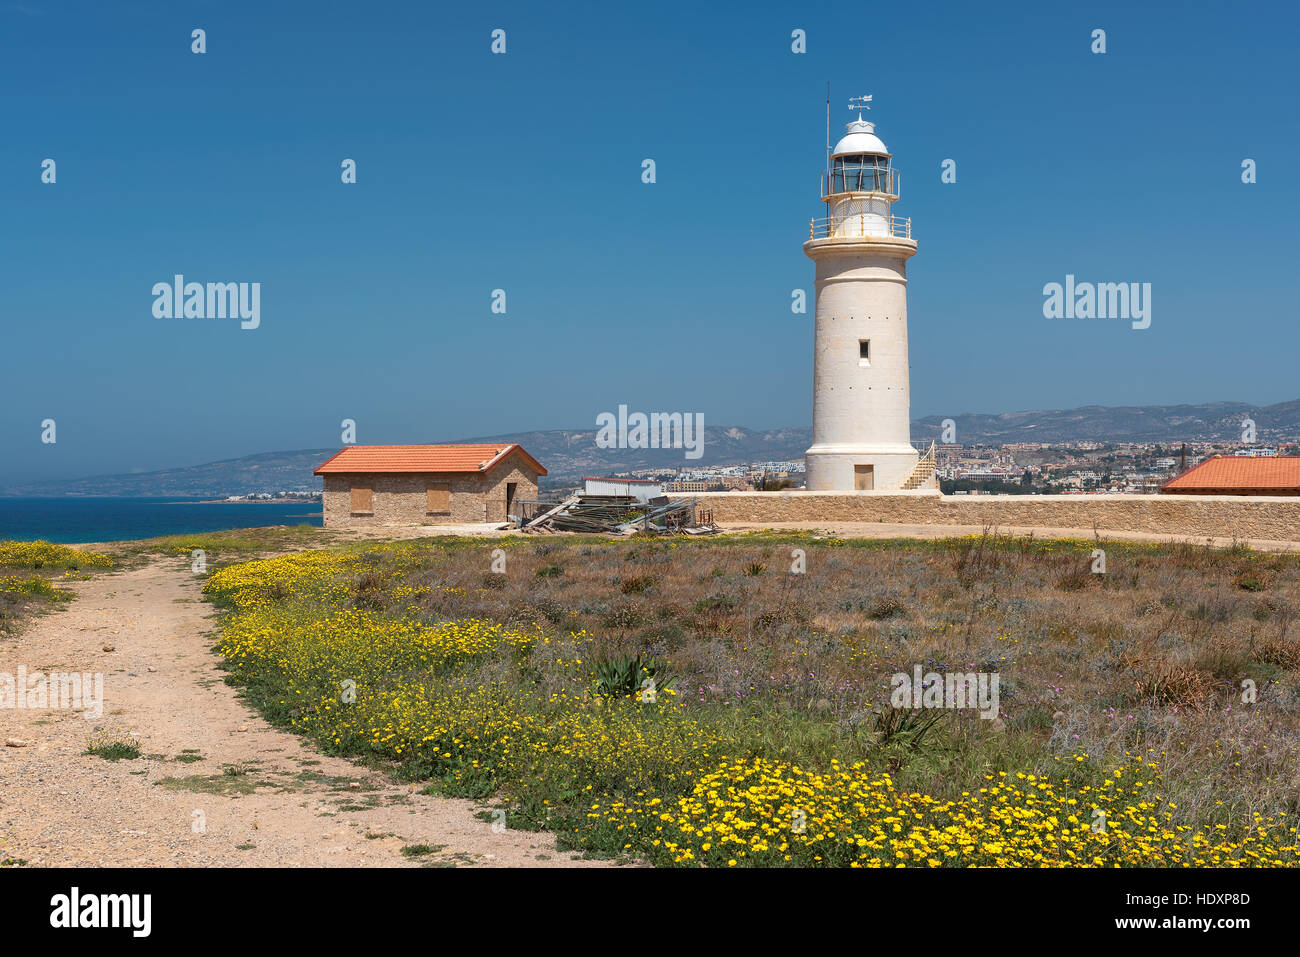 Old lighthouse in Paphos, Cyprus. - Stock Image